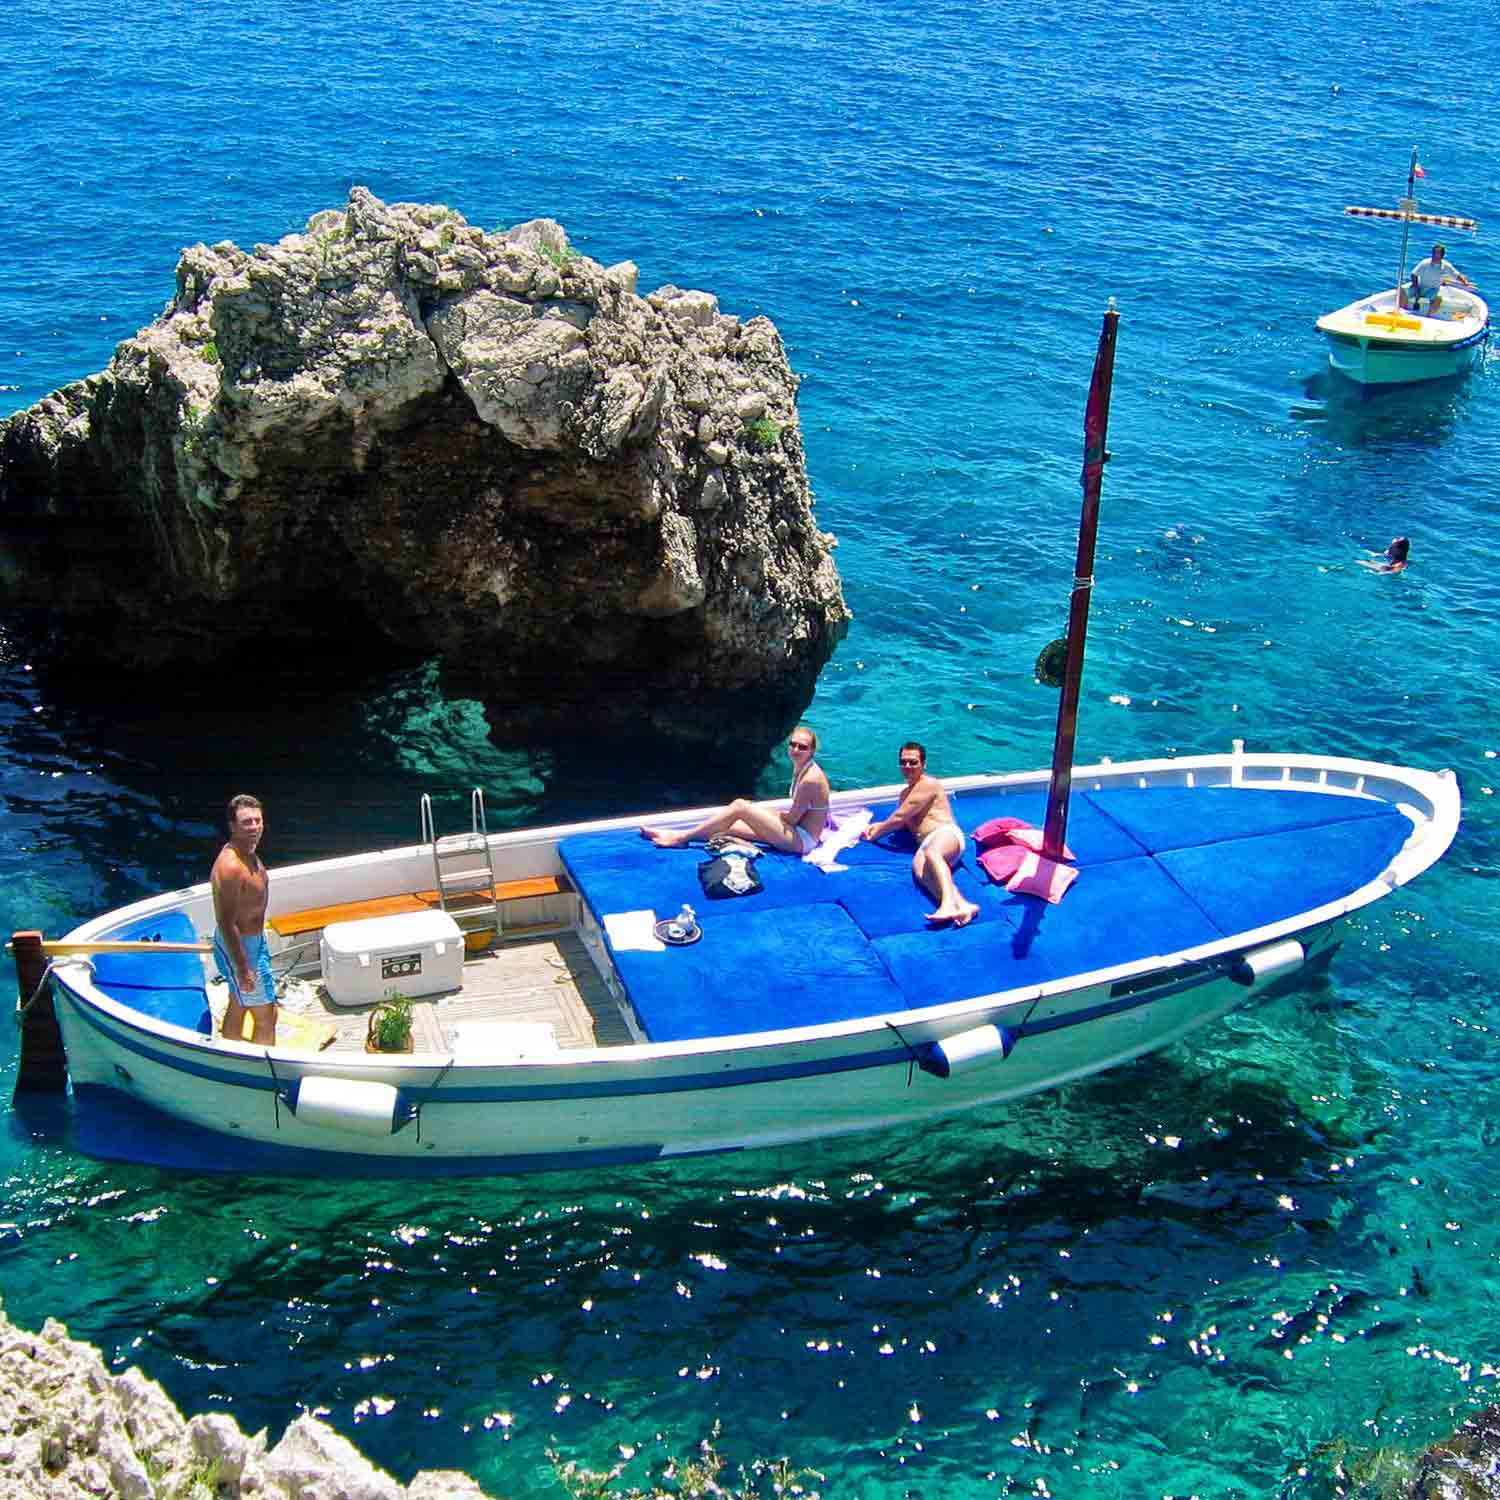 For an unforgettable boat tour around Capri, honeymoon destinations in Italy amazingexplore